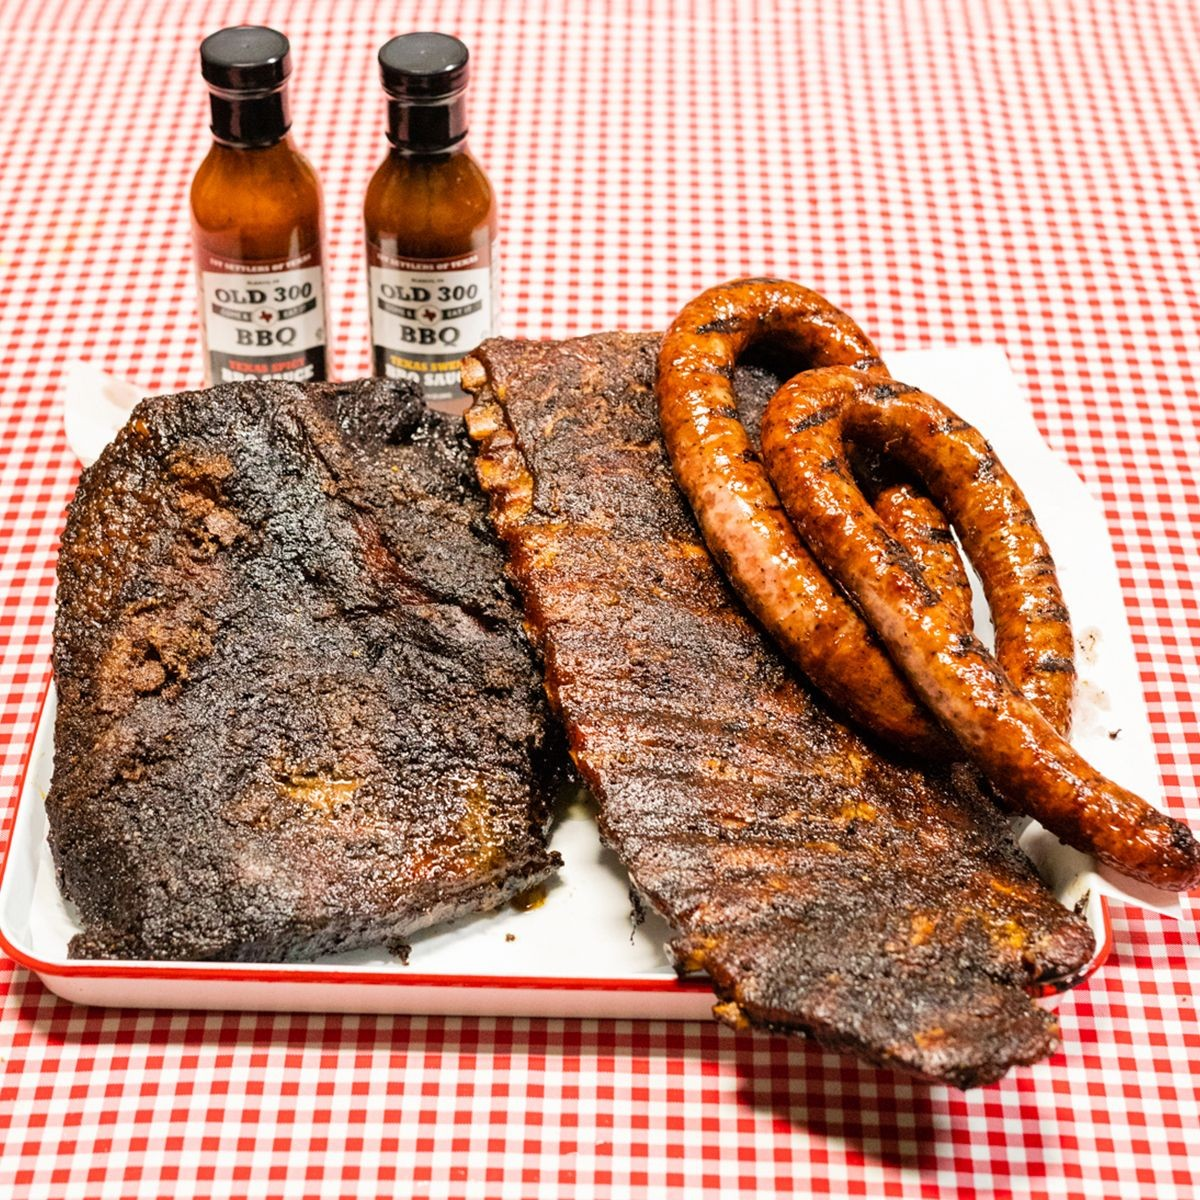 angus-brisket-ribs-and-sausages-trio